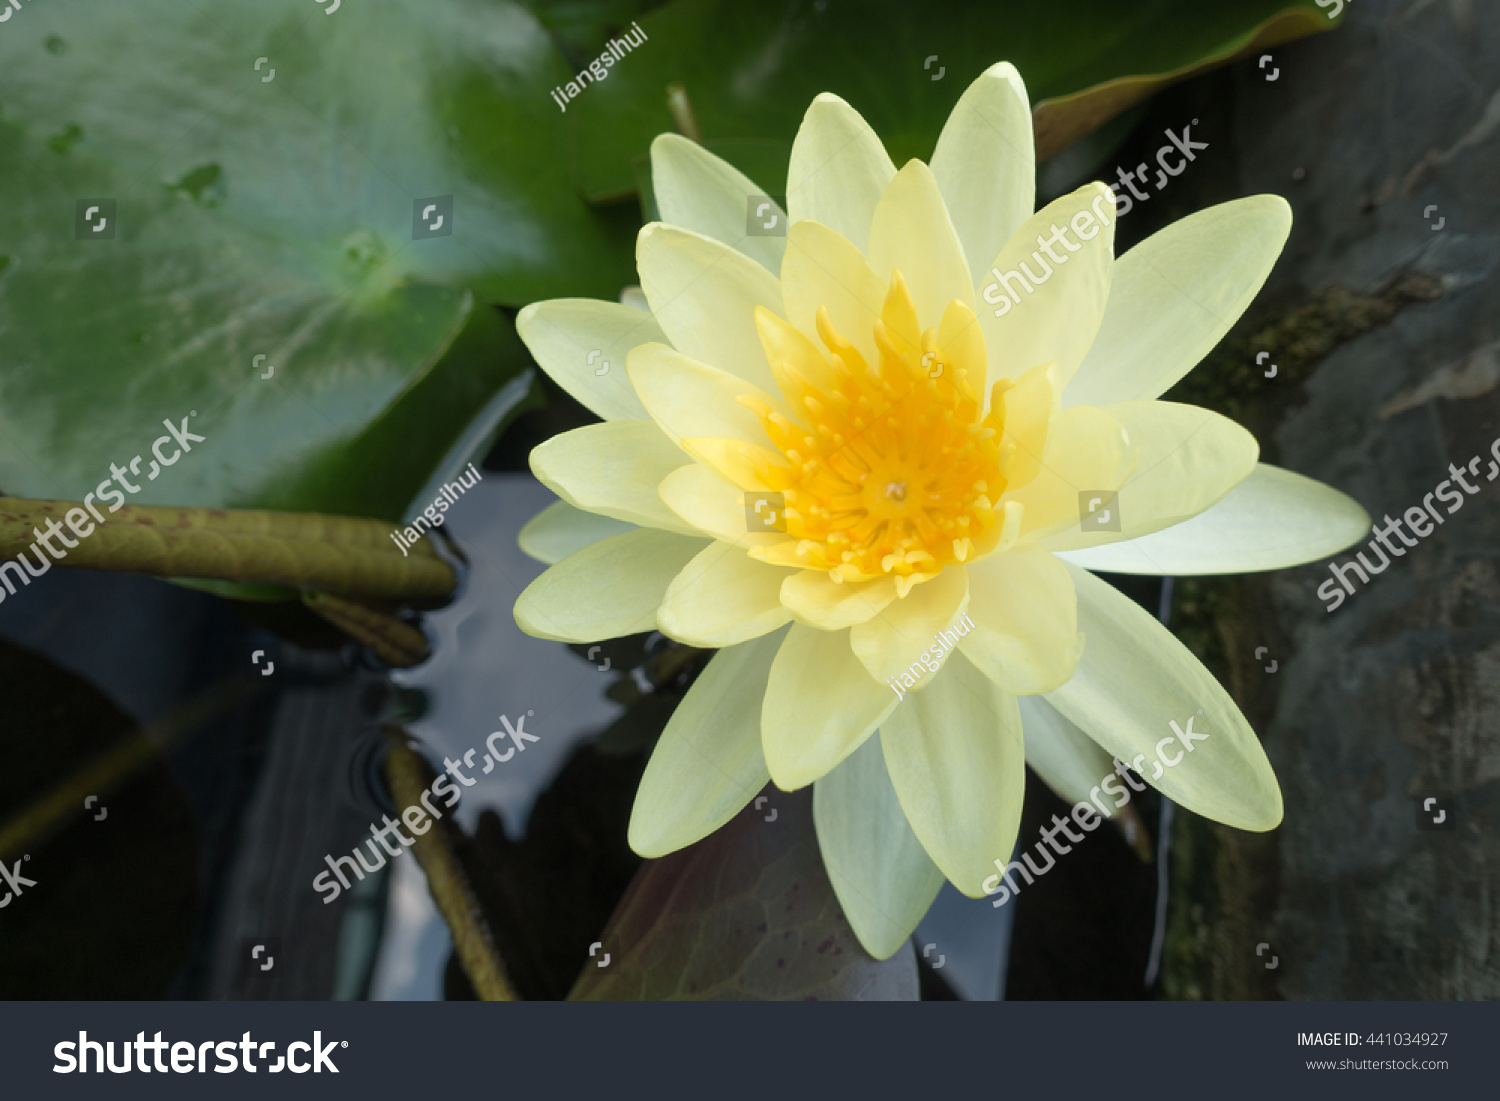 Pictures Of Yellow Lotus Flower In Water Rock Cafe